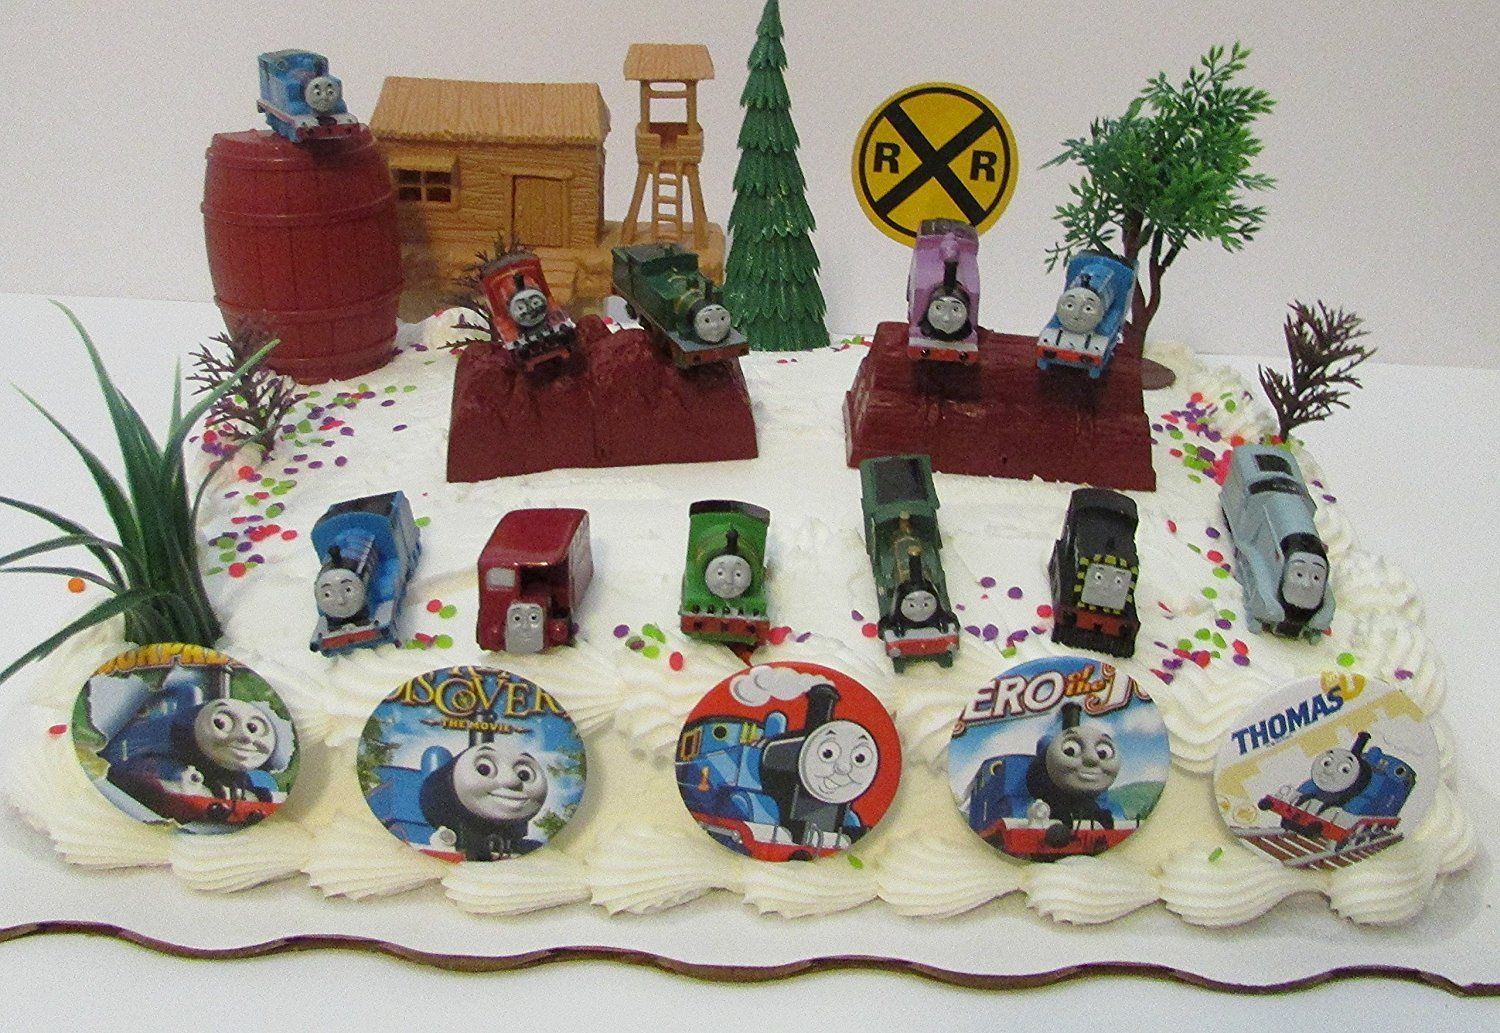 Thomas the Train Birthday Cake Topper Set Featuring Thomas Hiro